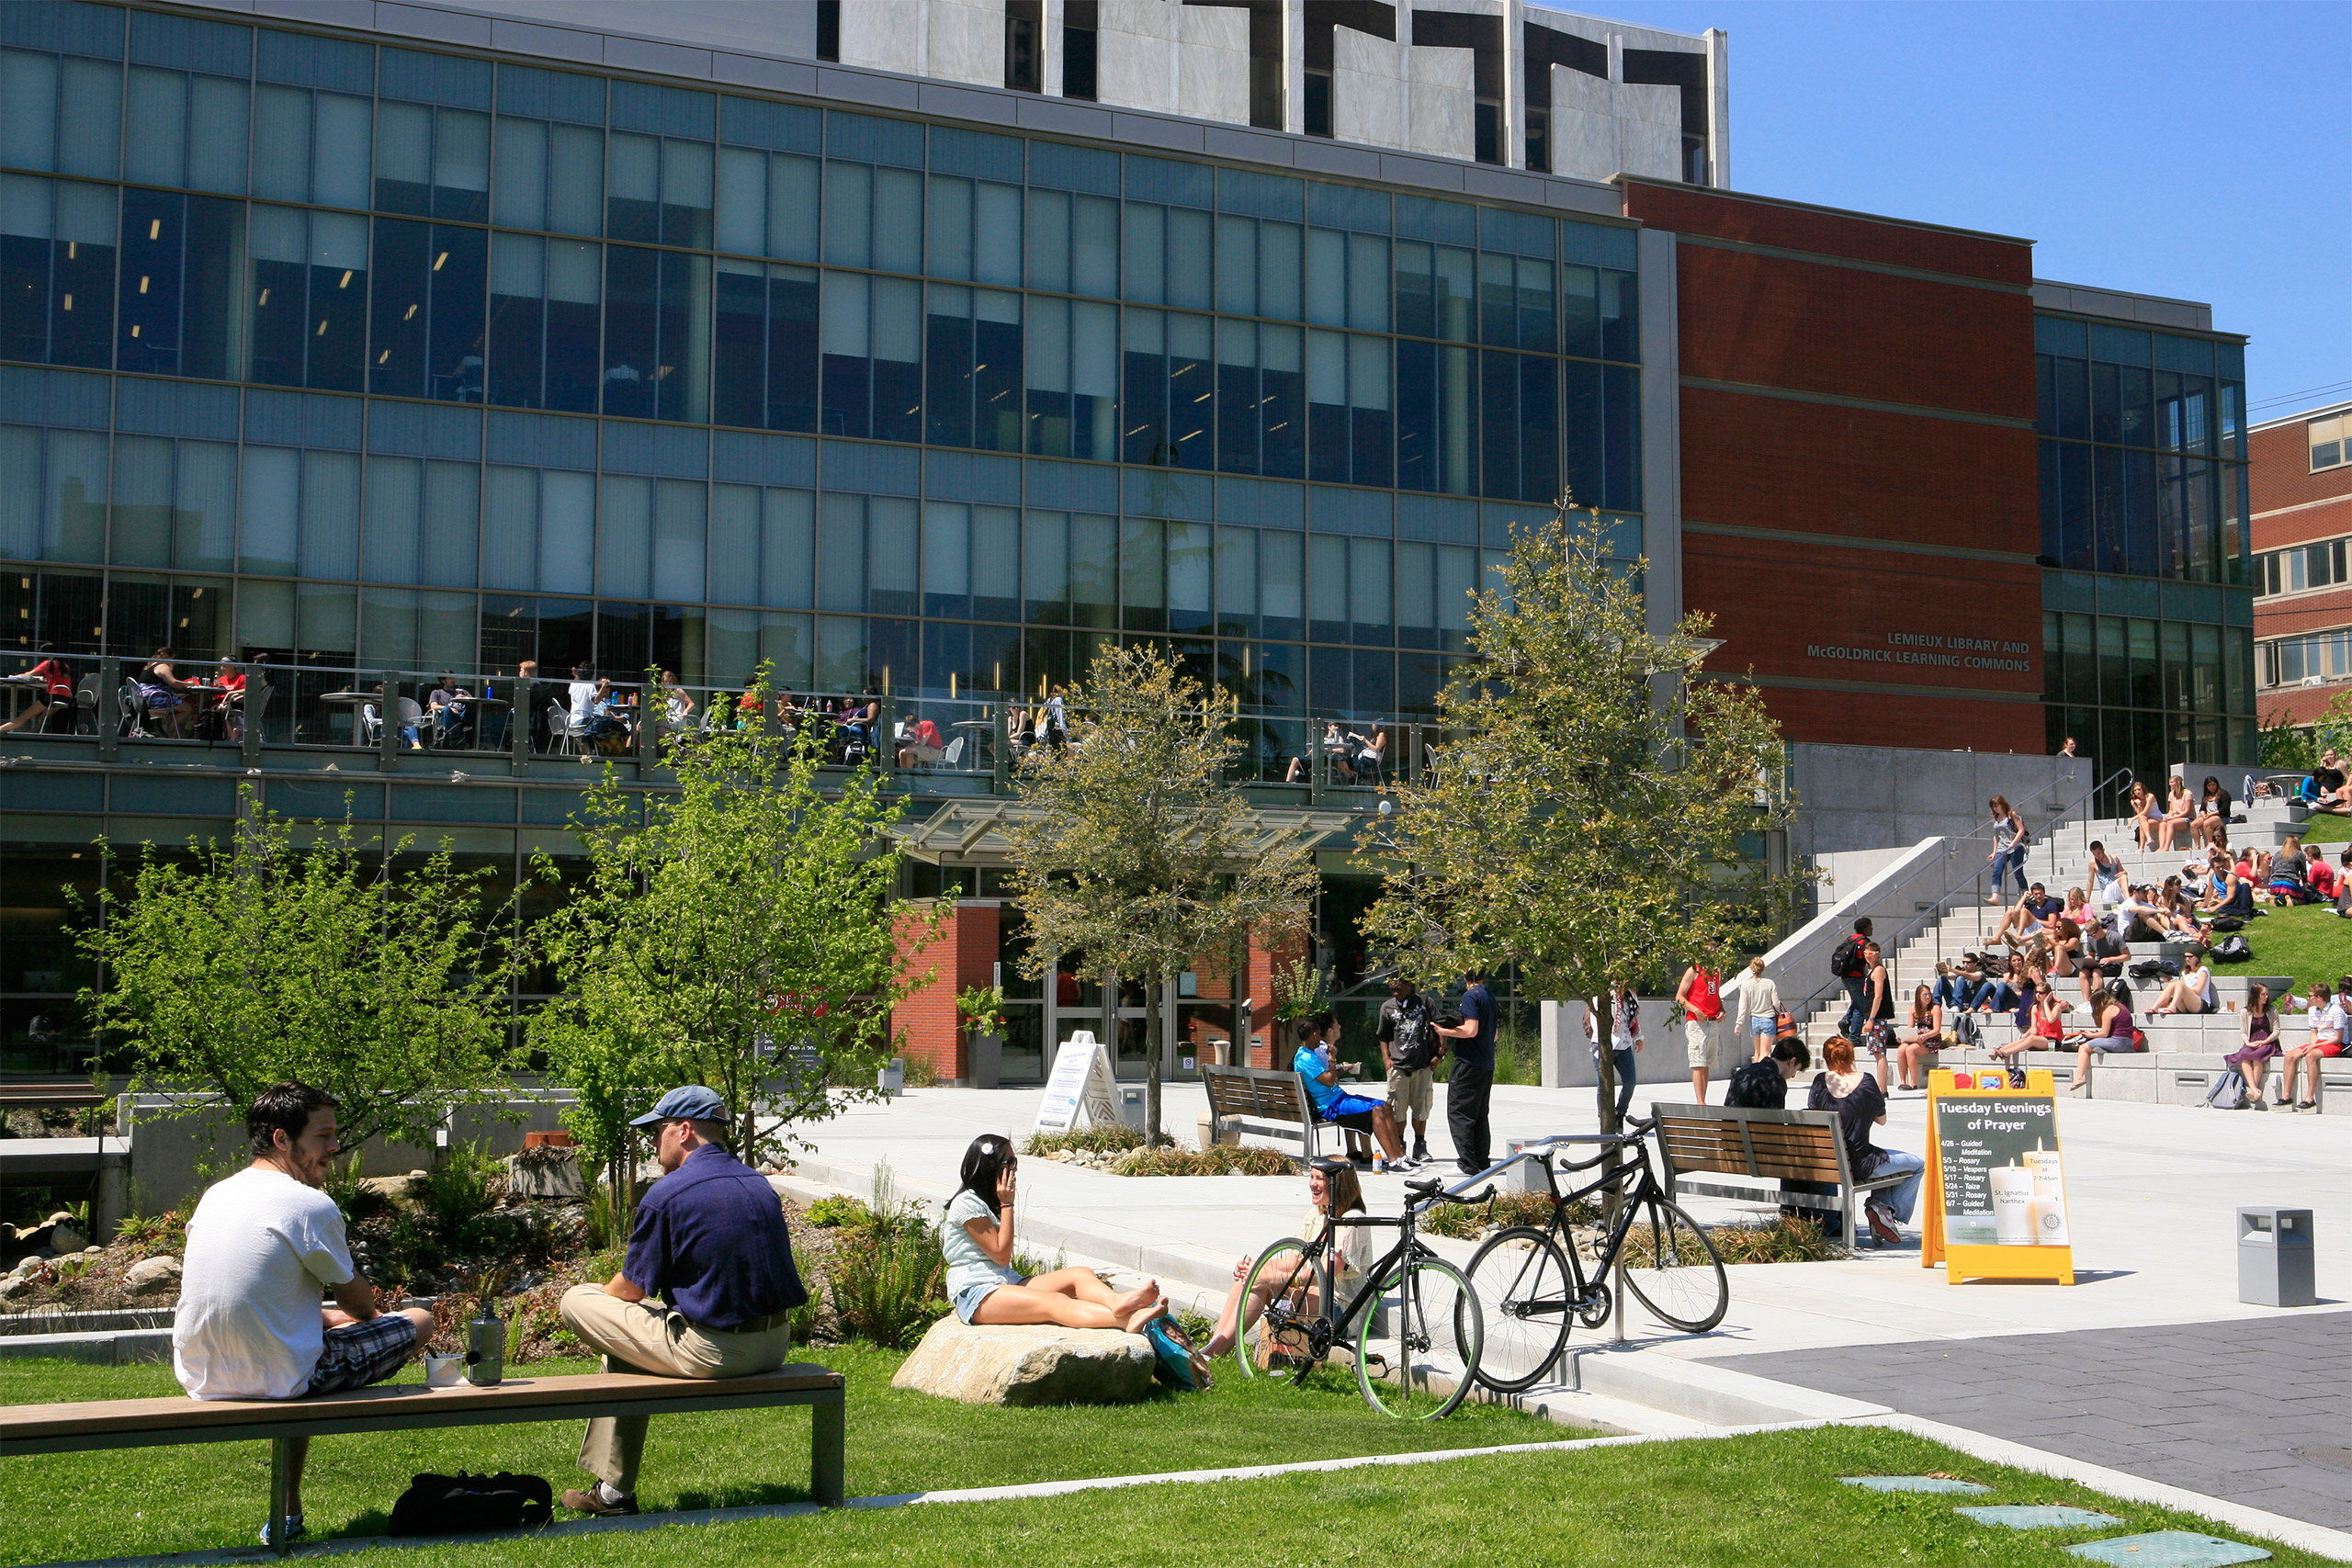 photograph of outdoor plaza behind Lemieux Library, with students seated on lawn and stairway.